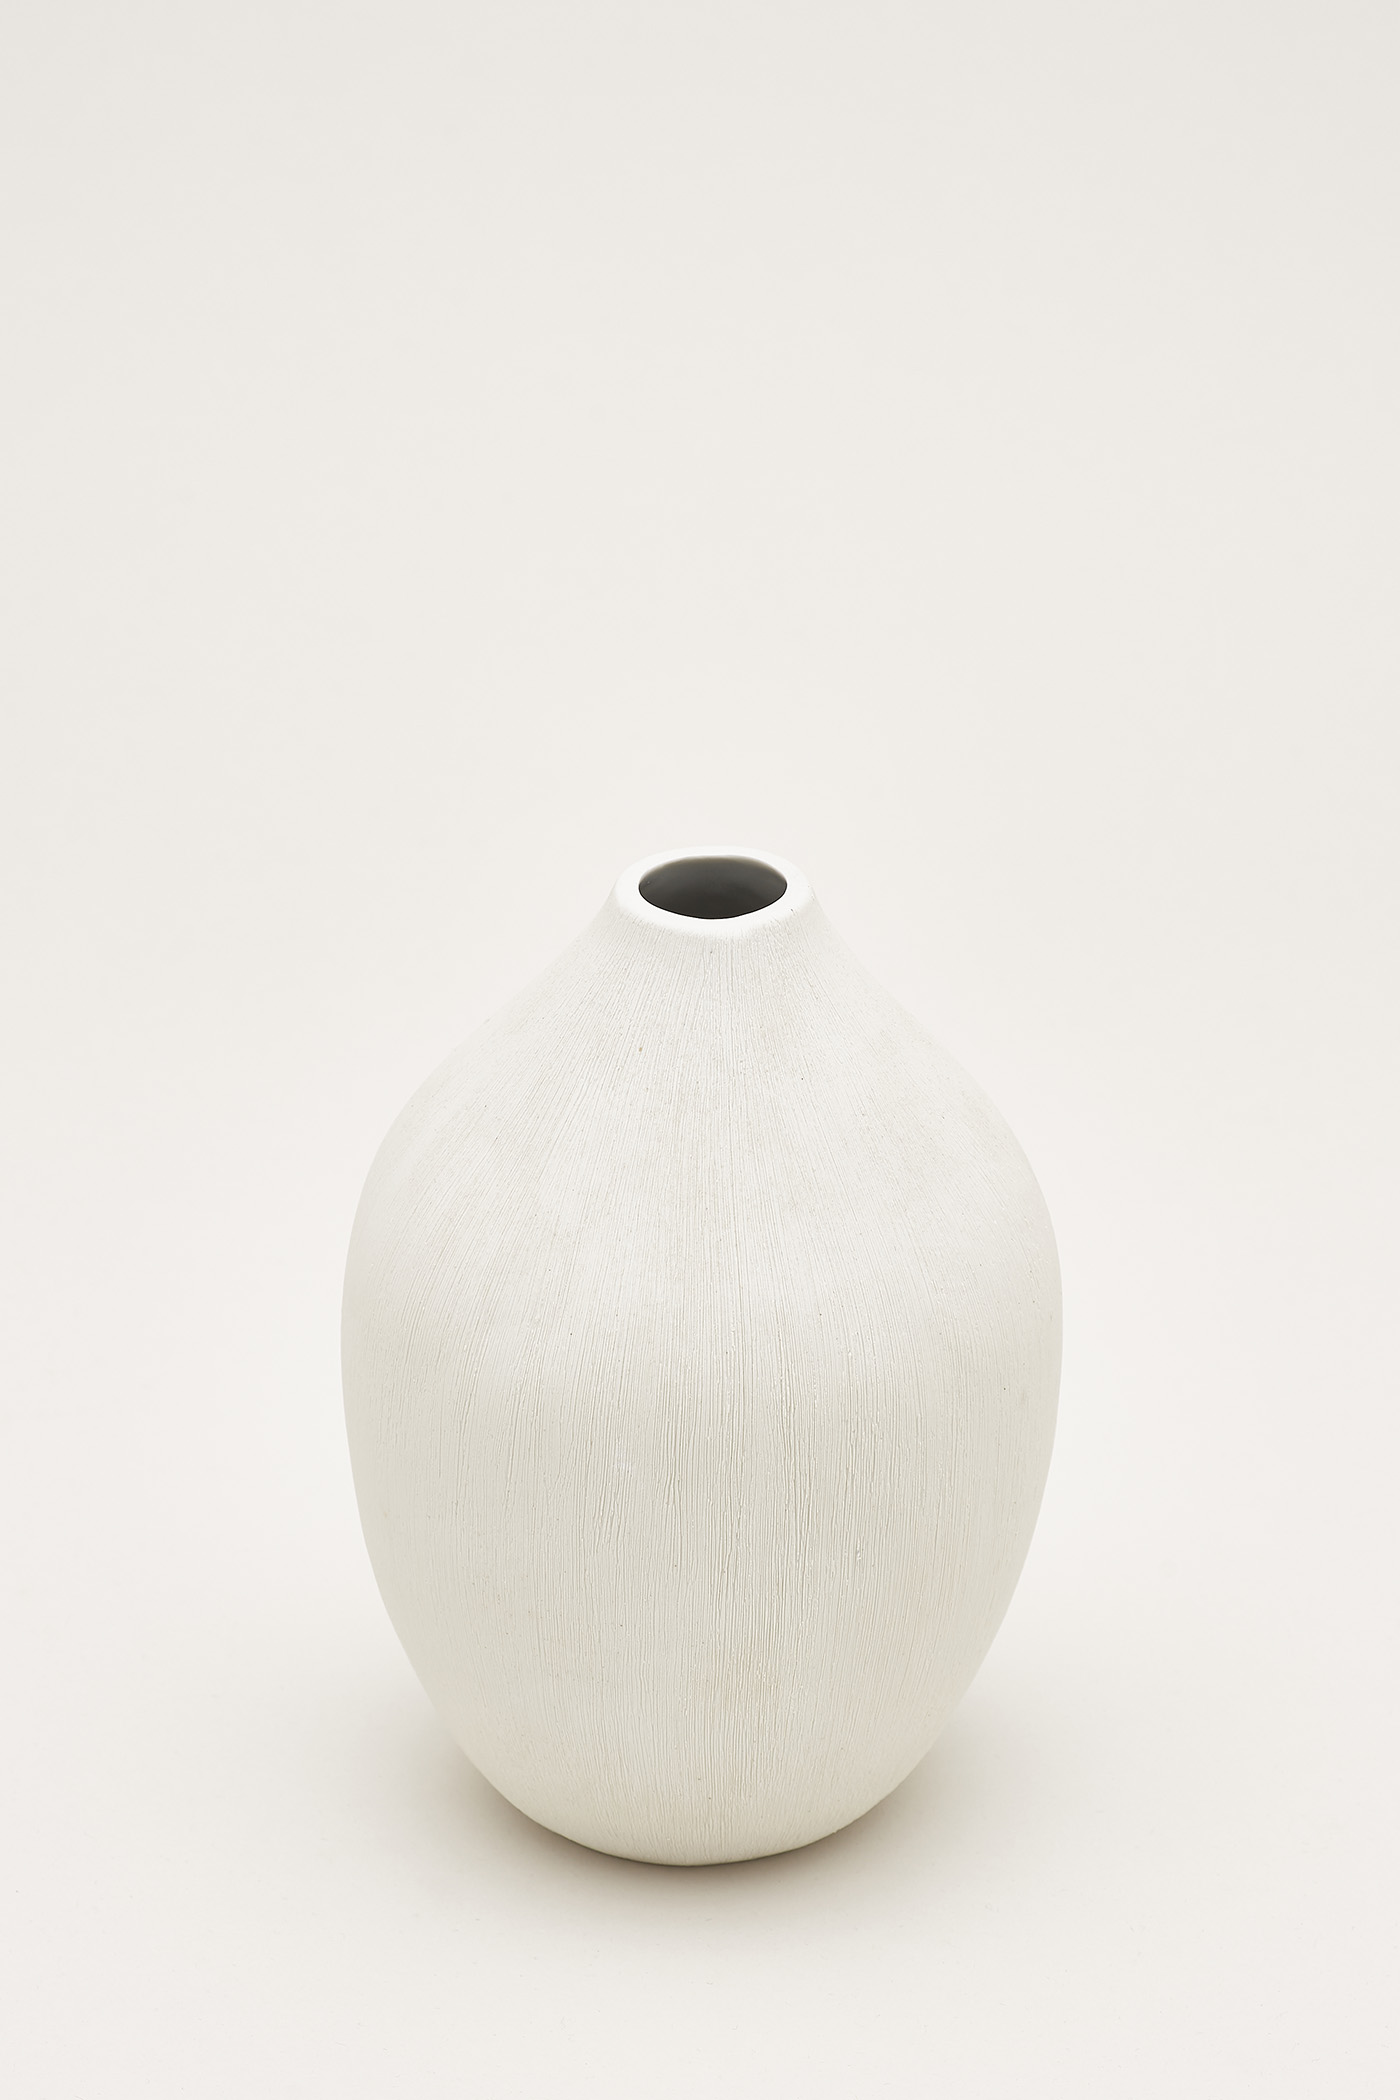 Shizu Hairline-Etched Large Vase